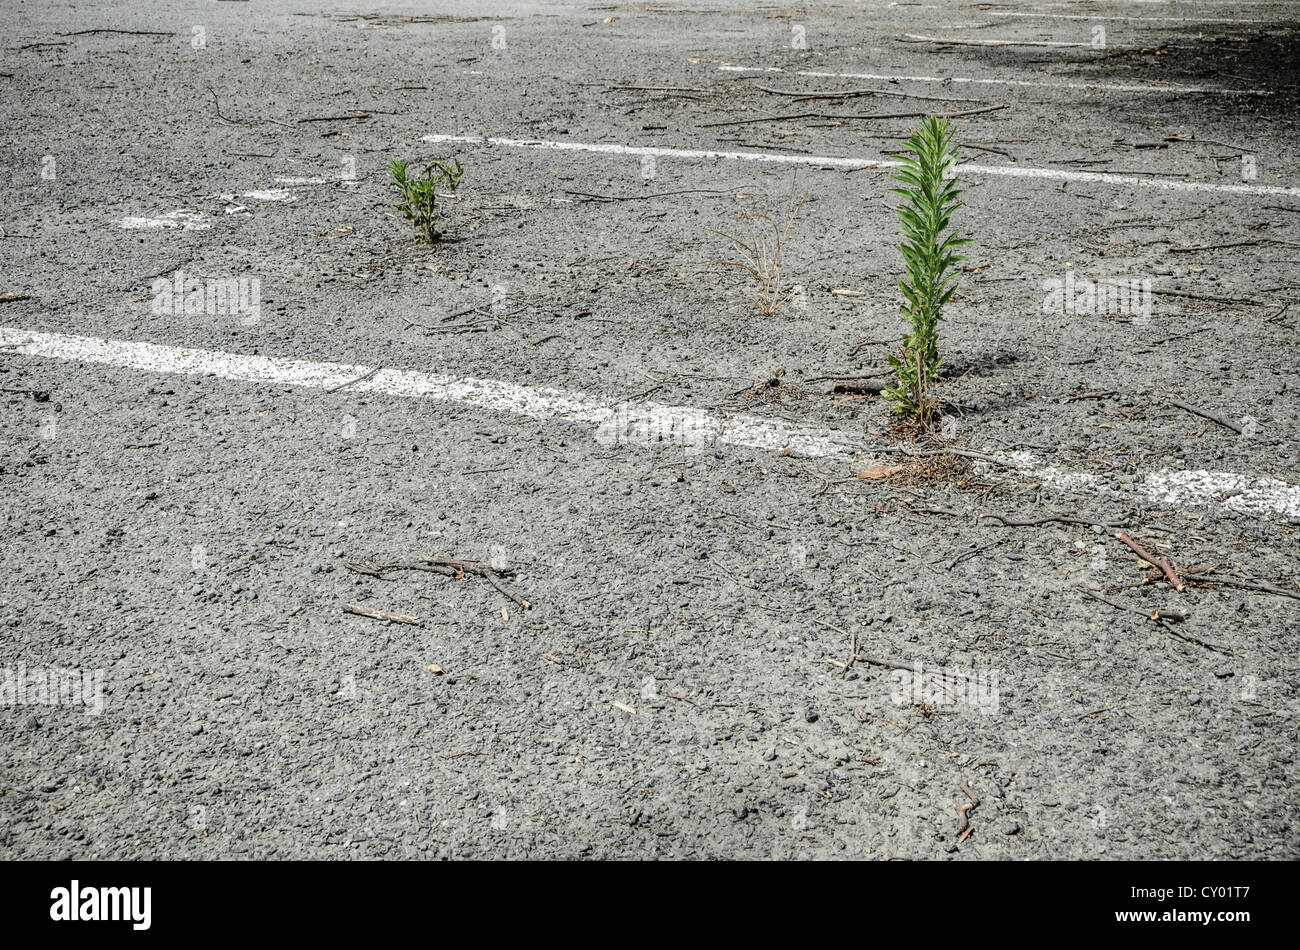 Deserted carpark in the evacuated earthquake district of Christchurch, South Island, New Zealand Stock Photo